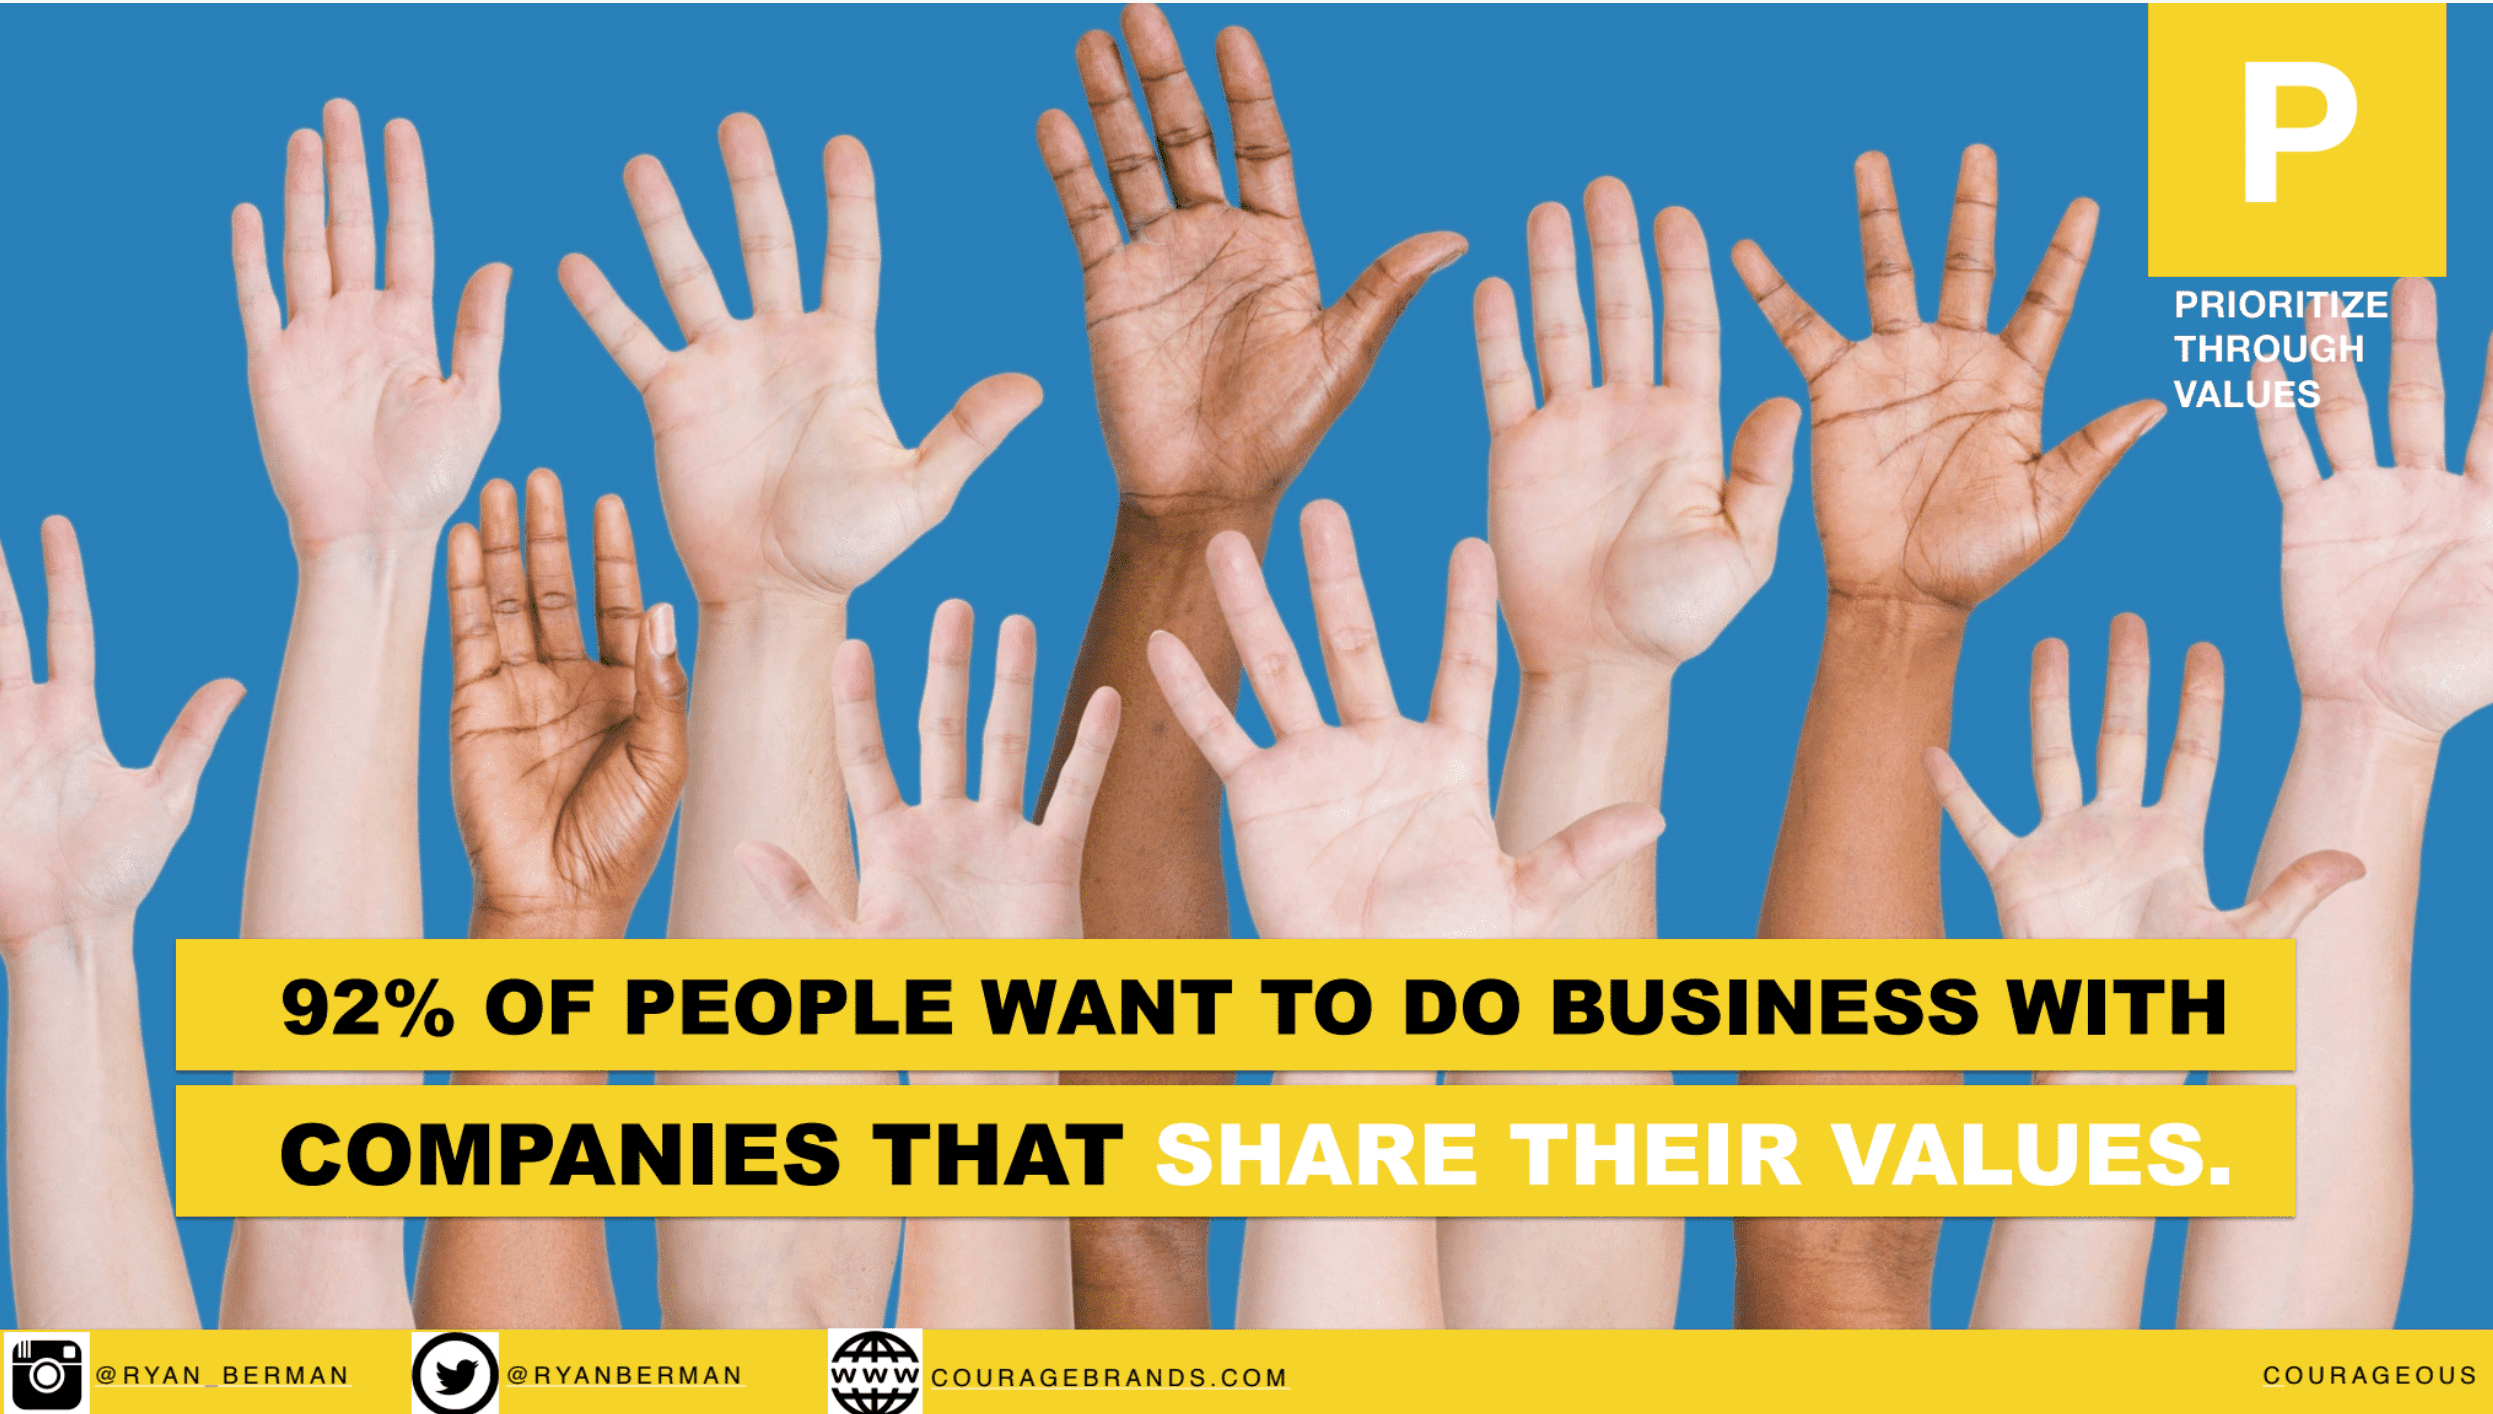 People Want to do Business with Companies that Share Their Values